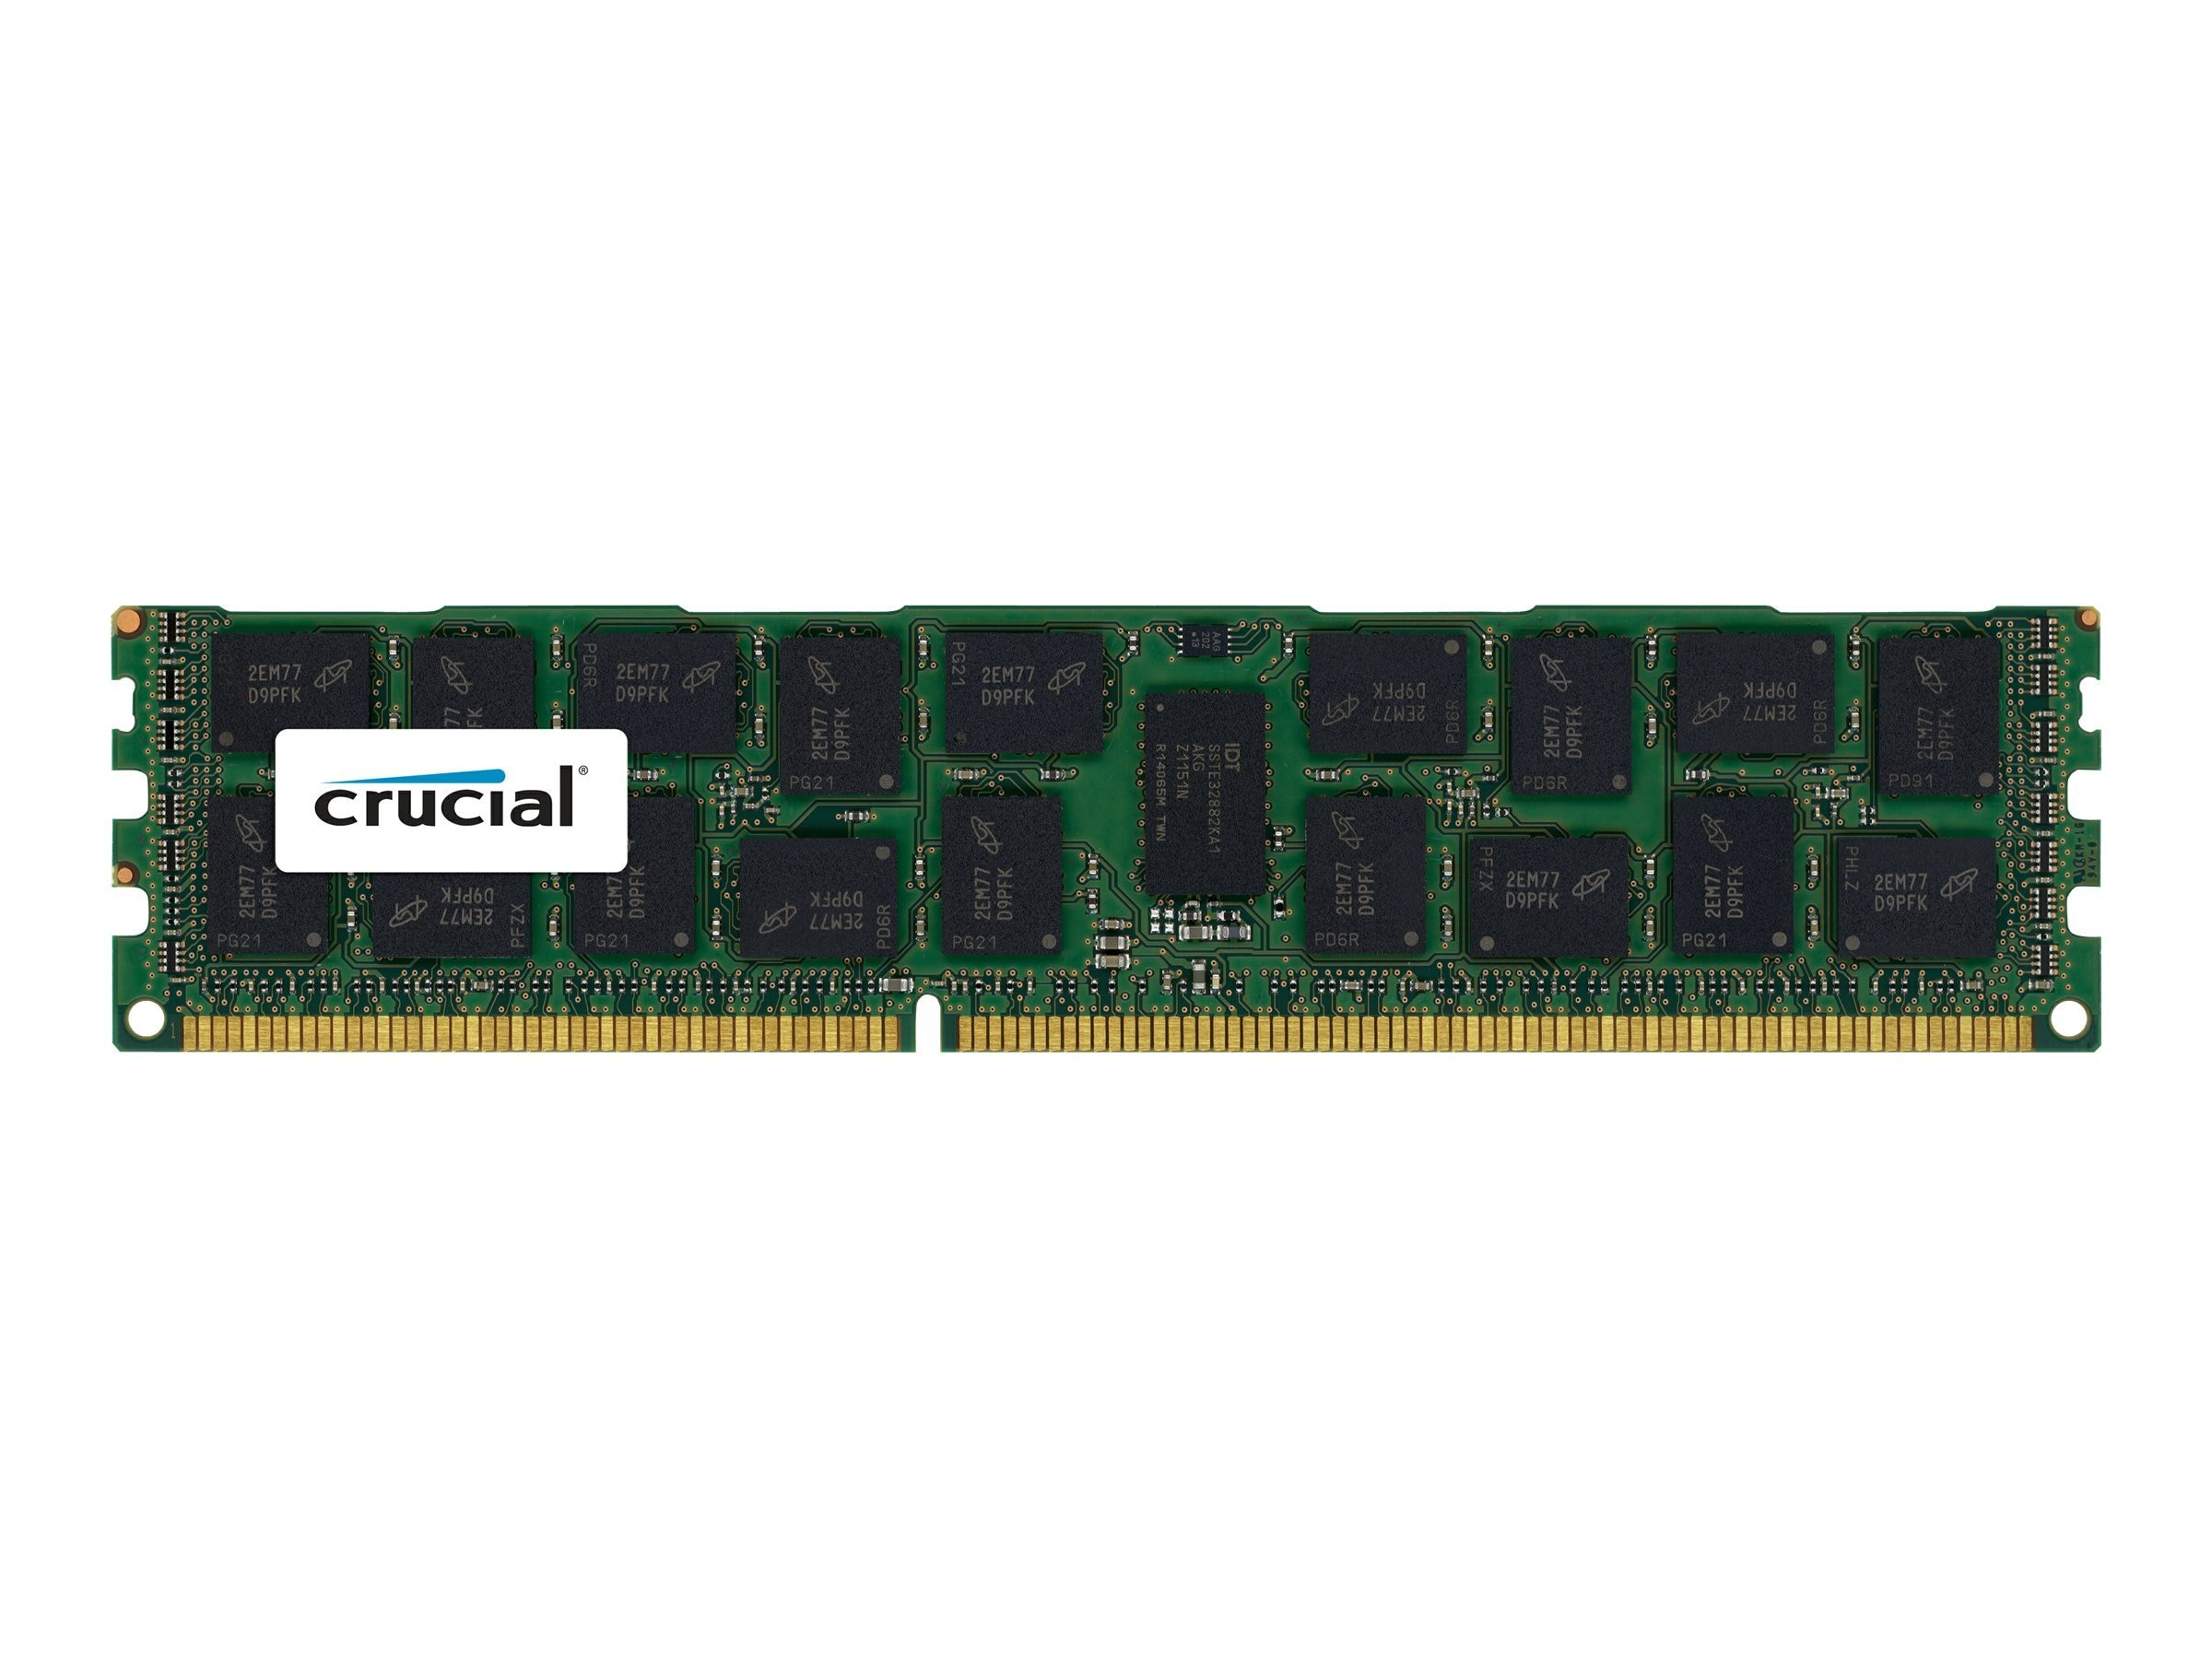 Crucial 32GB PC3-8500 240-pin DDR3 SDRAM DIMM